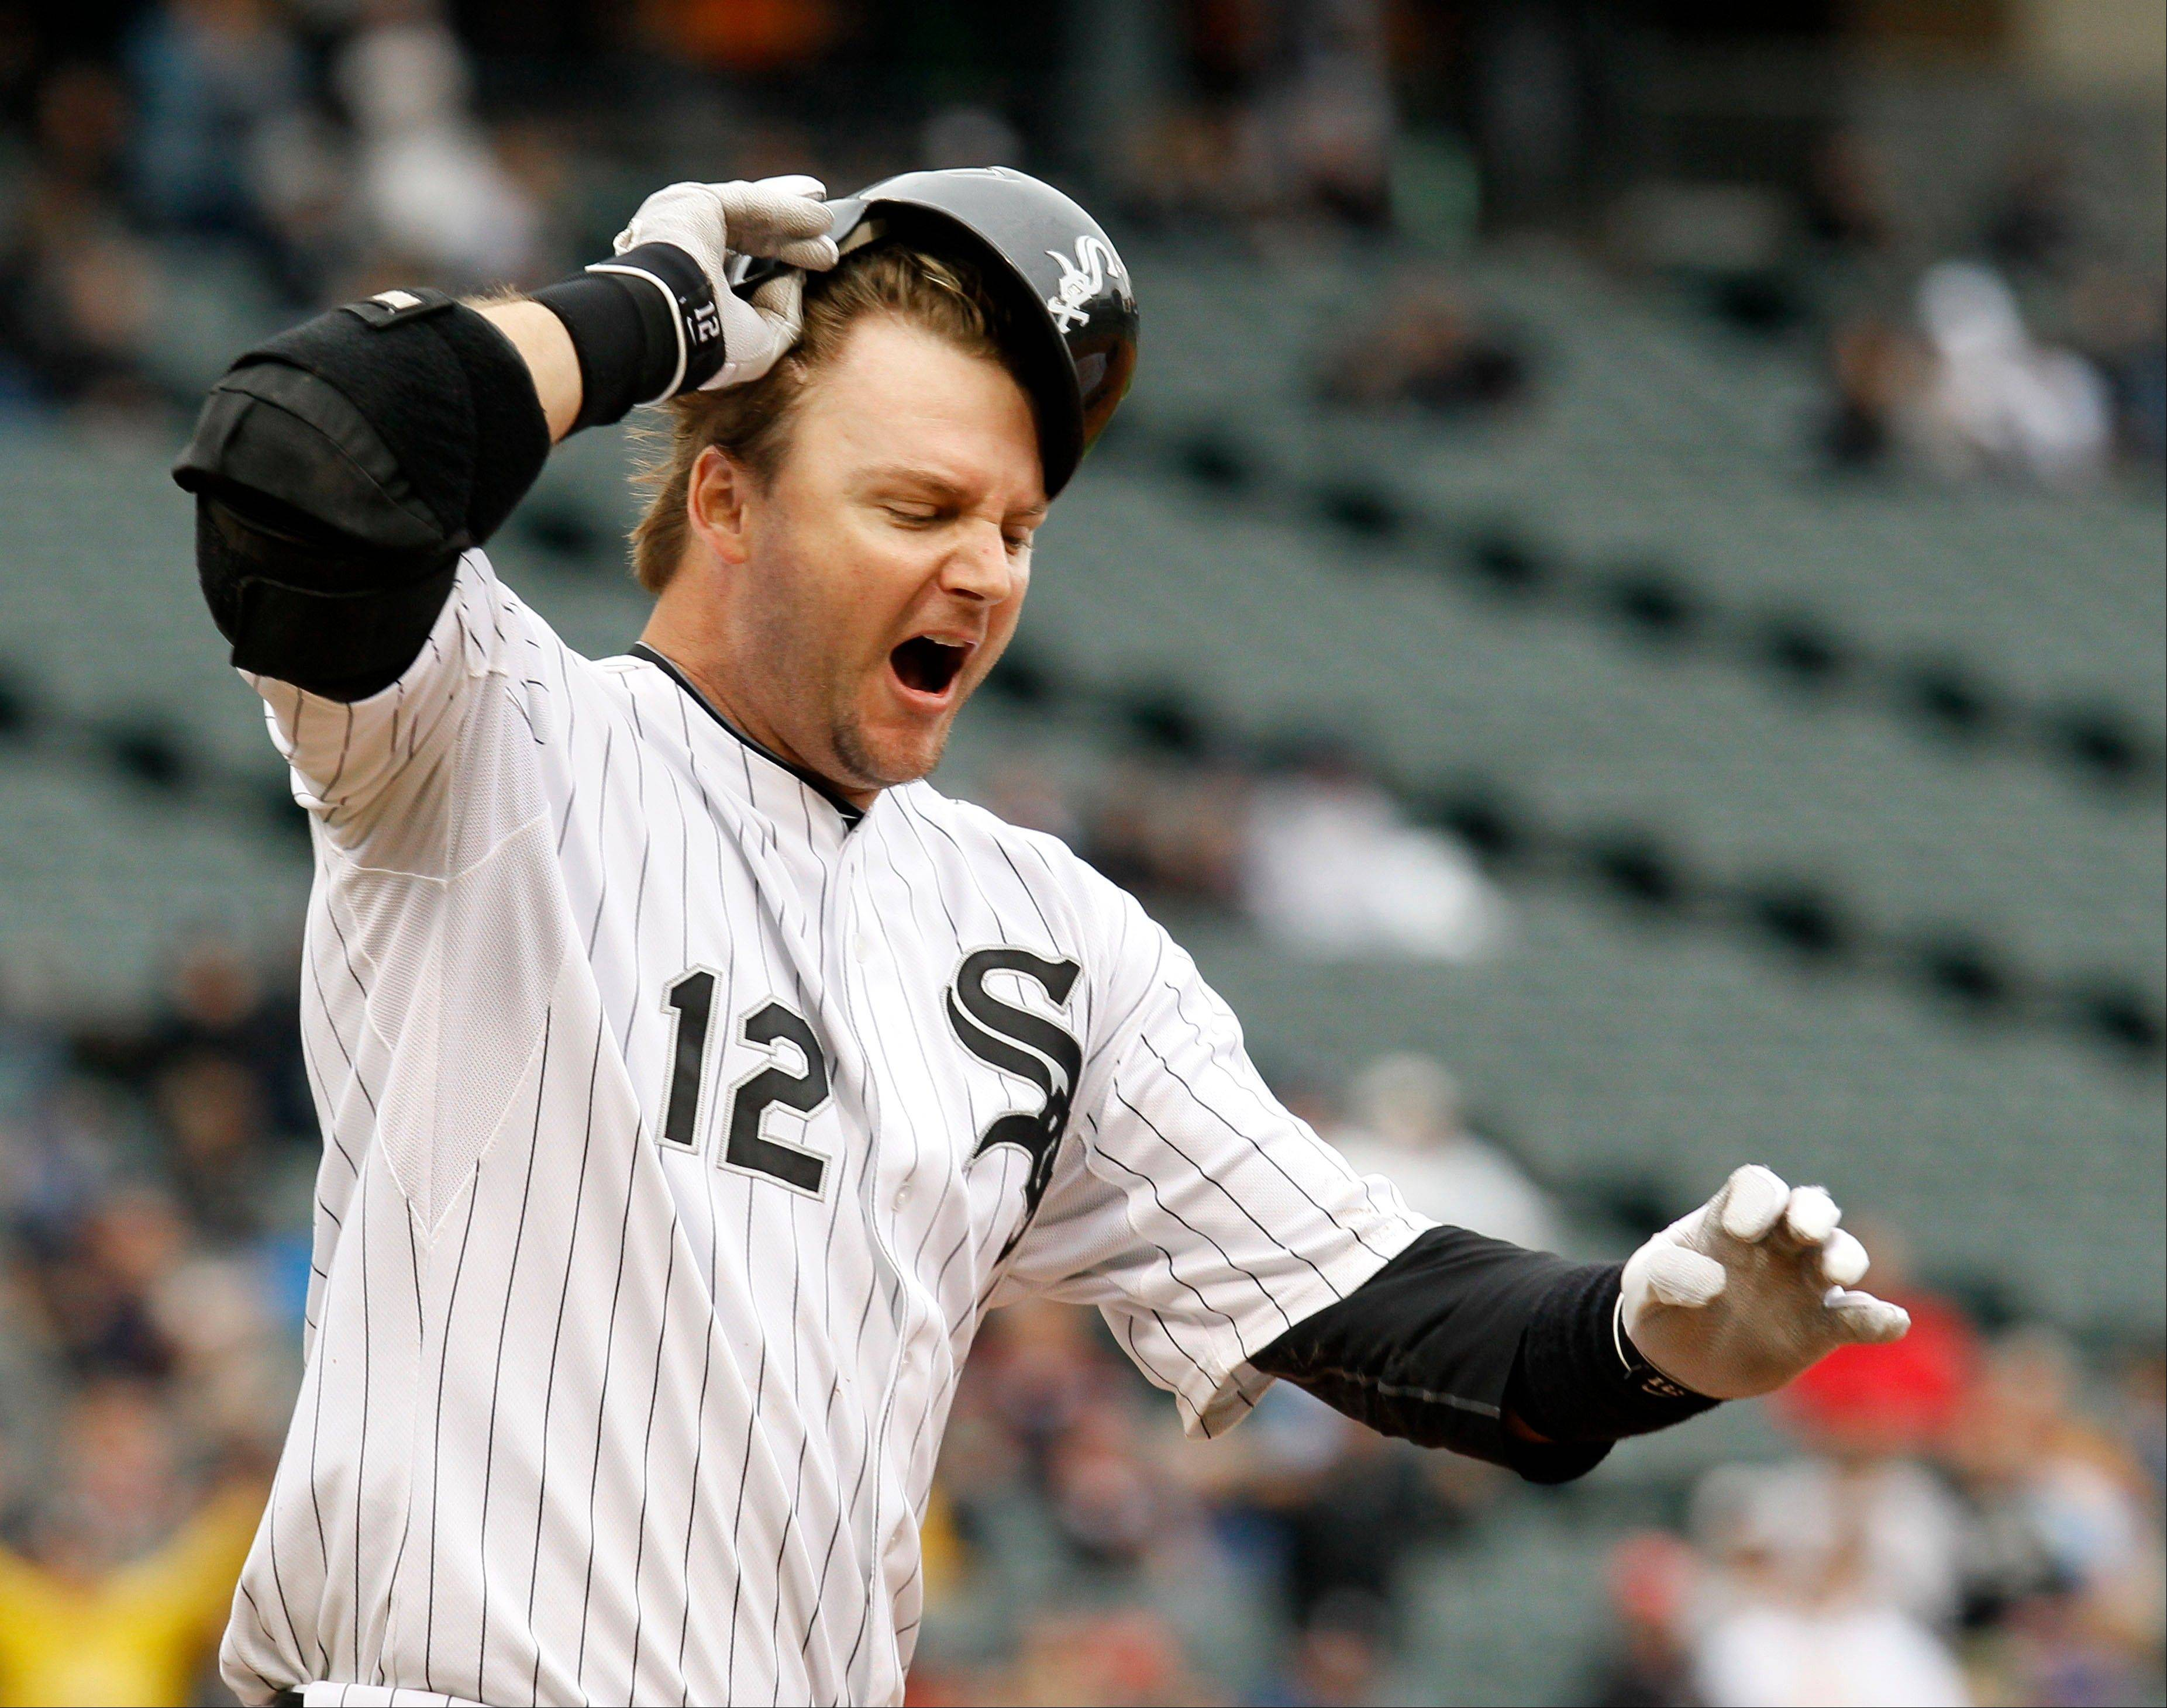 A.J. Pierzynski reacts after grounding into a double play Wednesday to end the ninth inning against the Detroit Tigers. The Tigers won 6-5 in 10 innings.